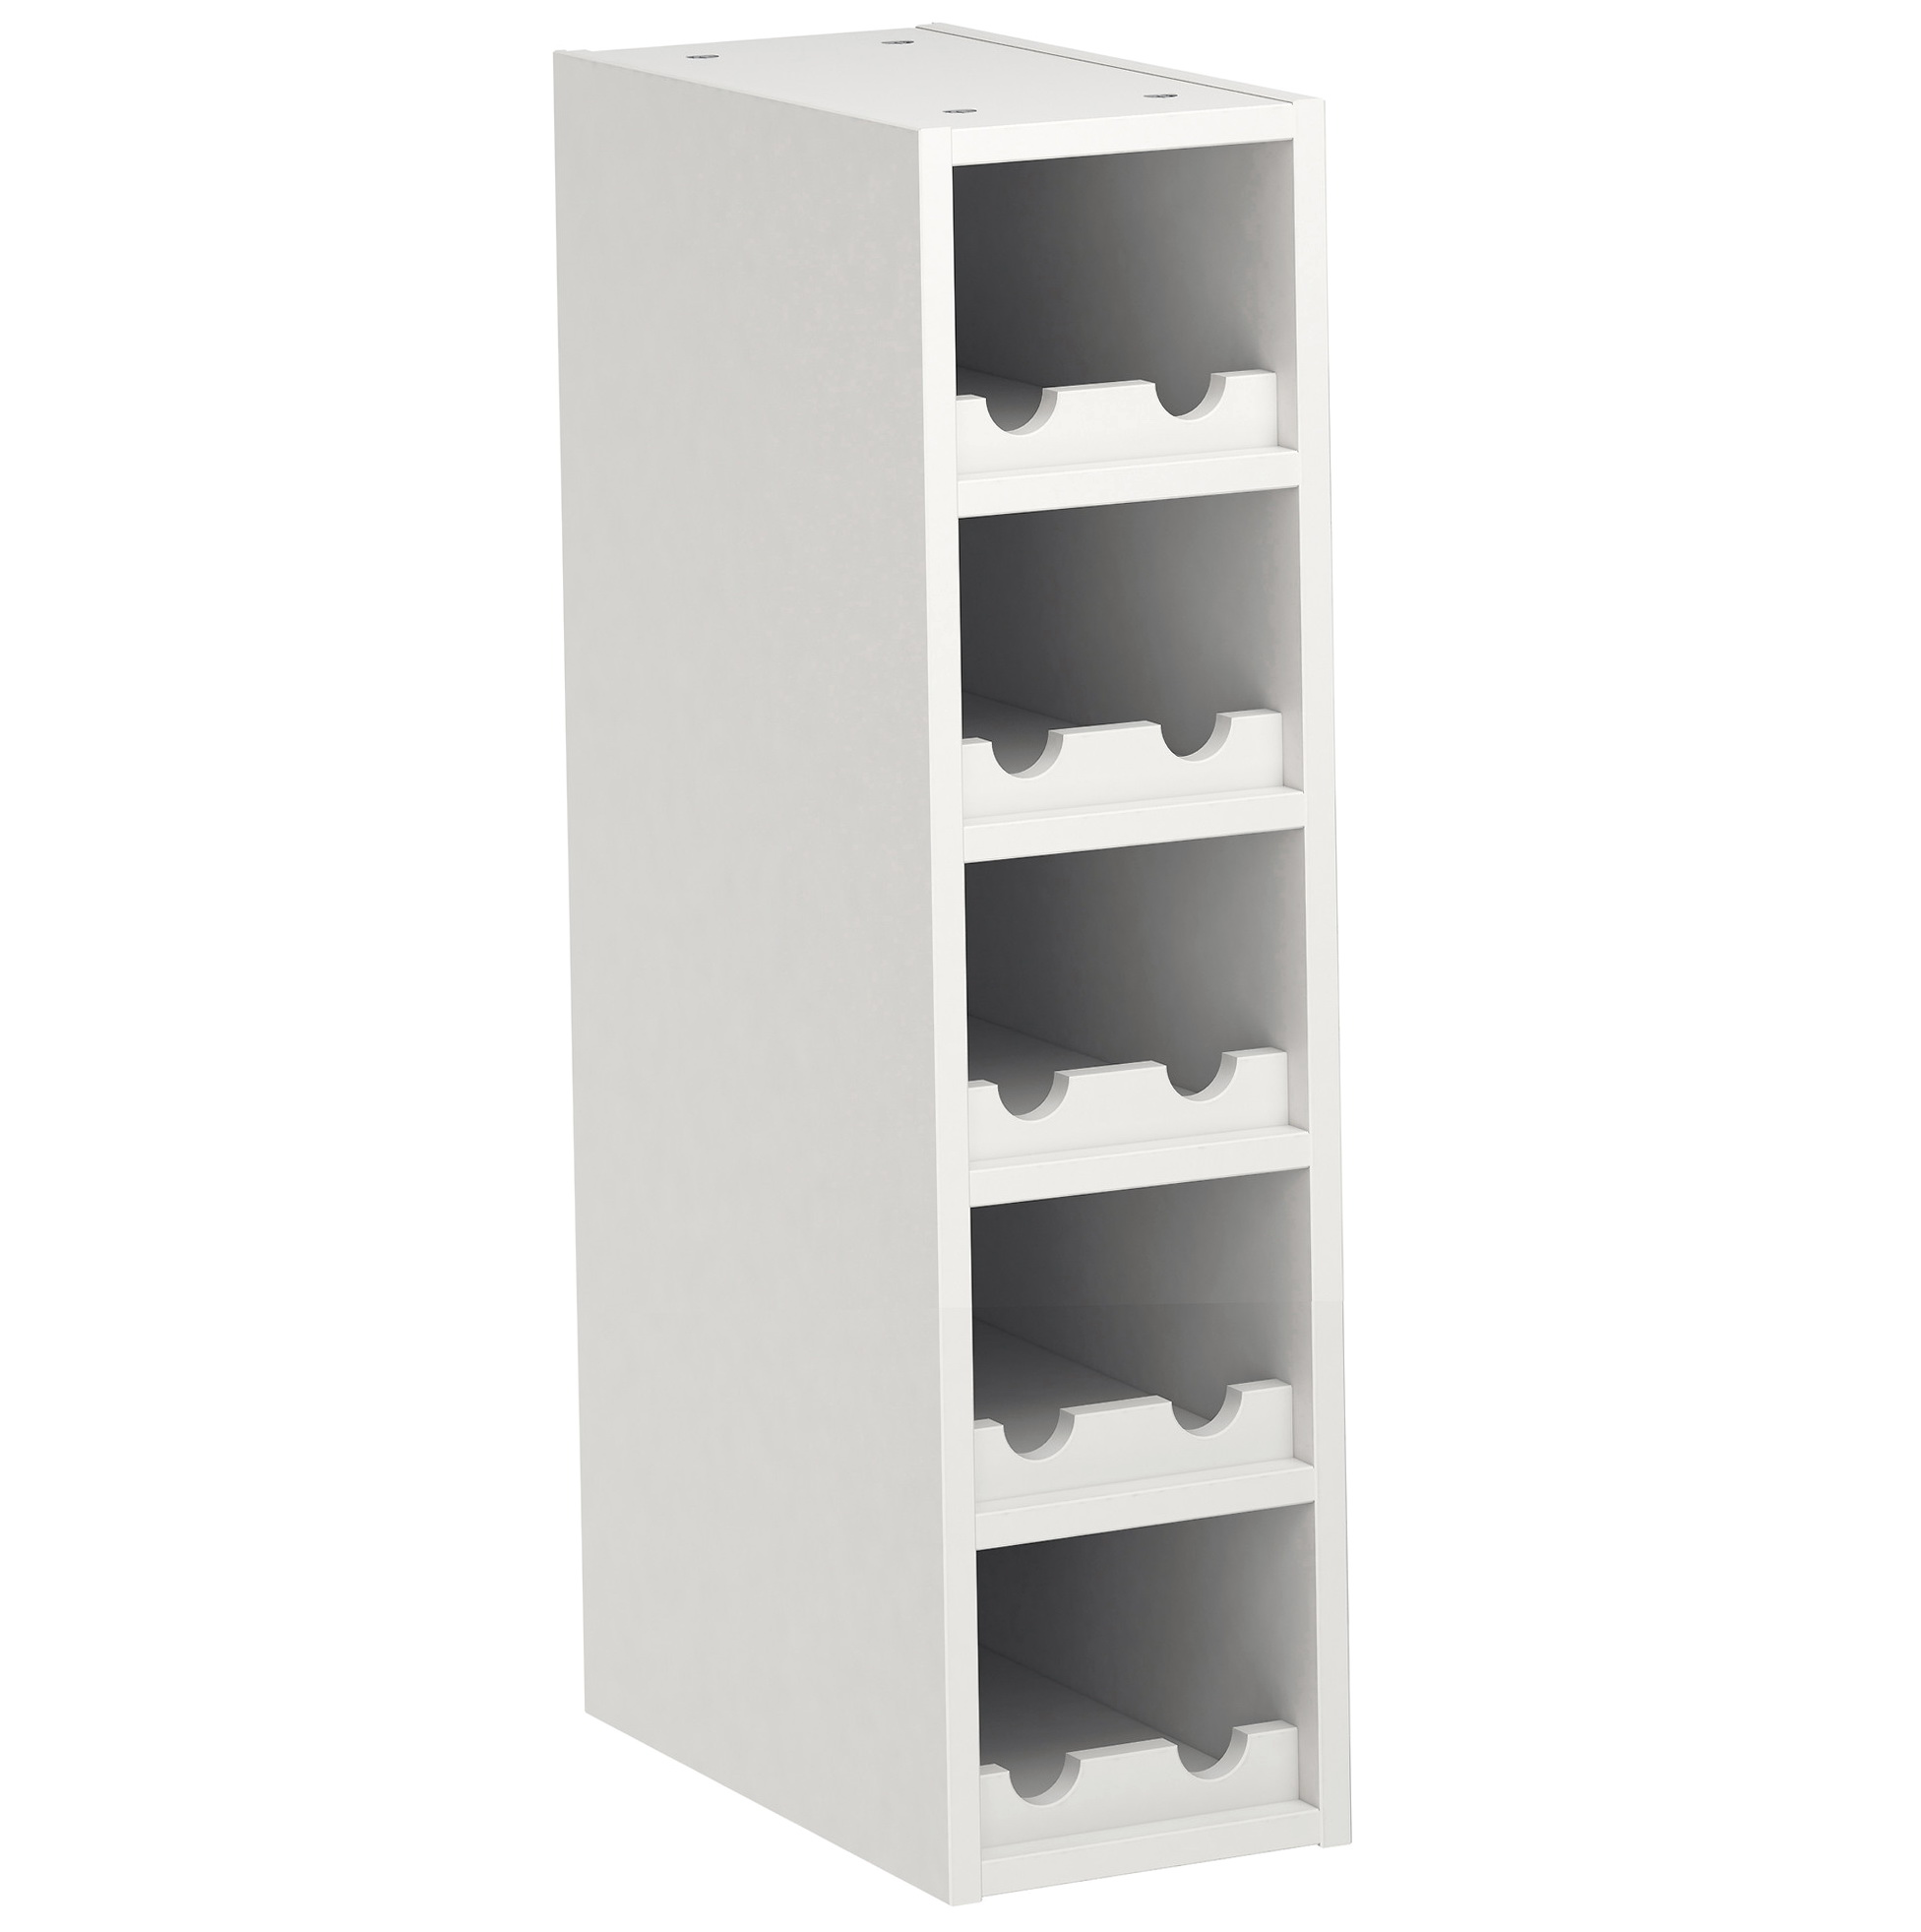 White wine rack cabinet ikea home design ideas for Wine shelves ikea